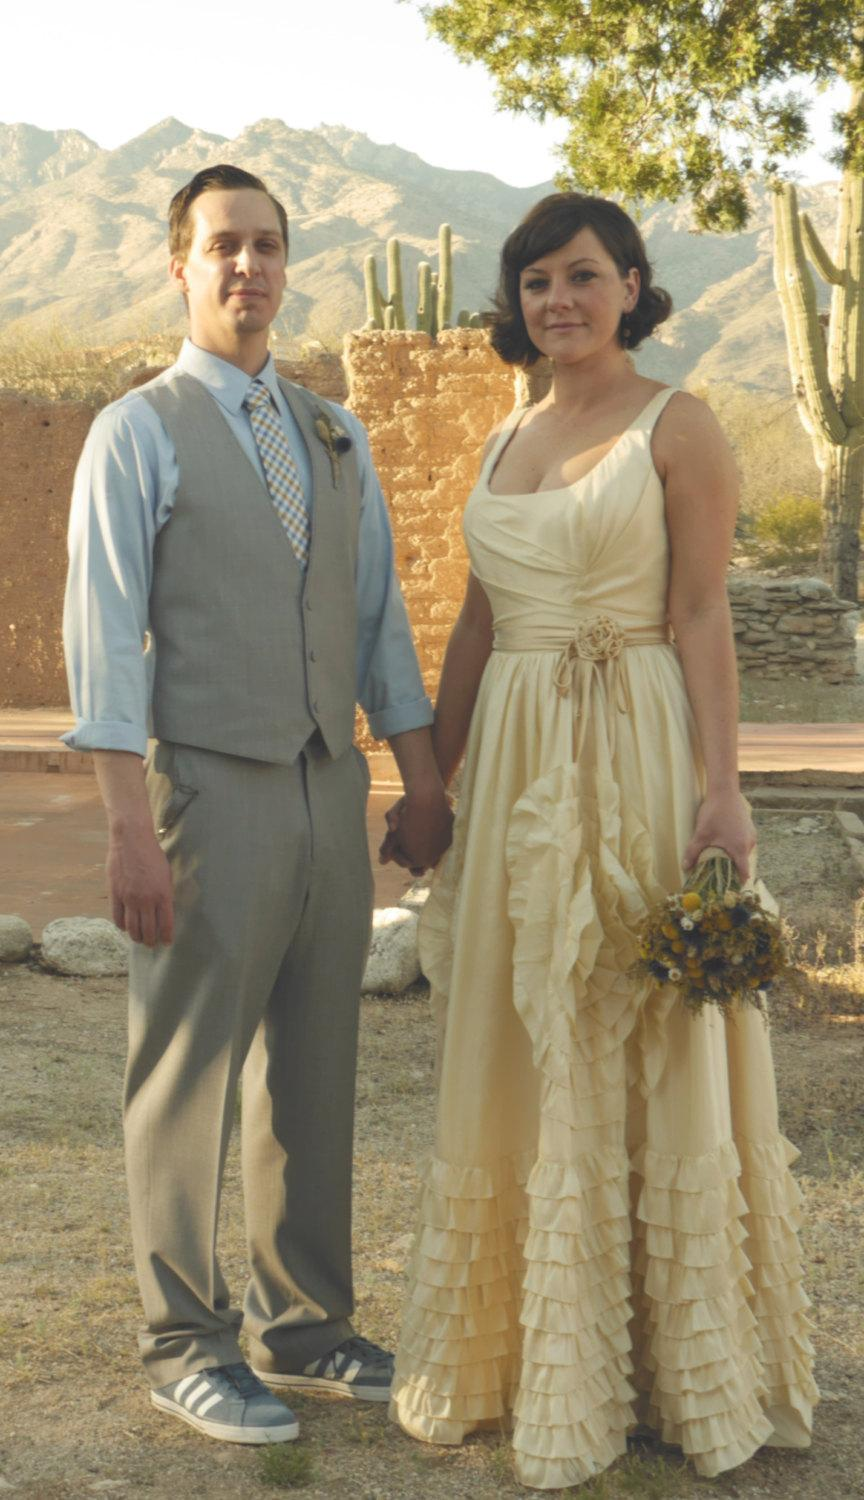 Spanish Style Wedding Dress With Straps Inspired By Jackie Kennedy